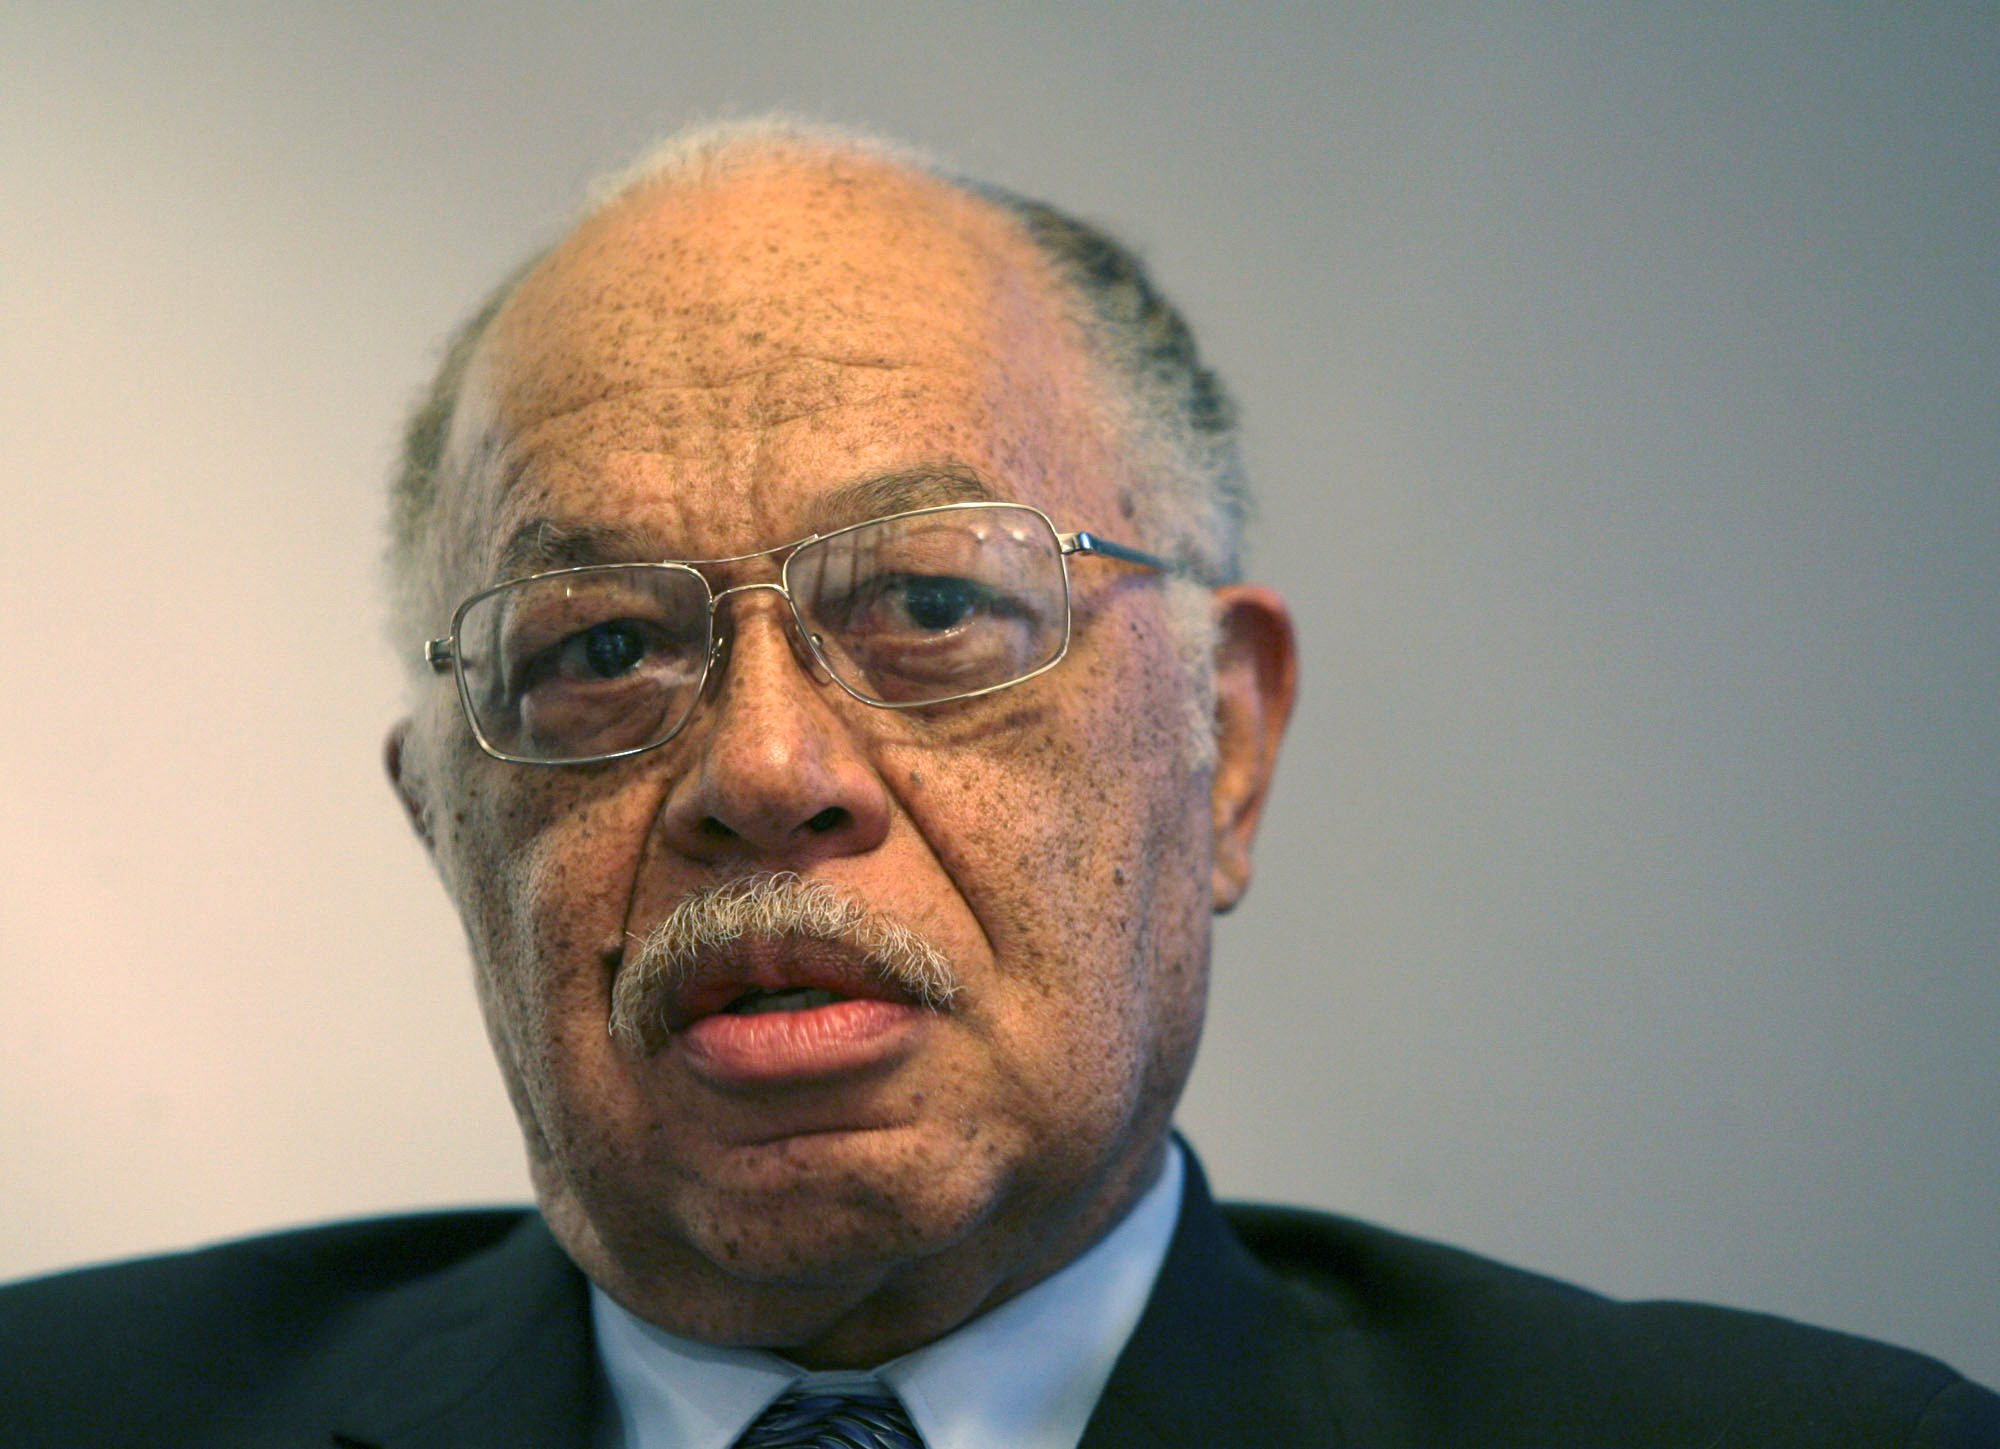 Kermit Gosnell s son shot during Philadelphia home invasion